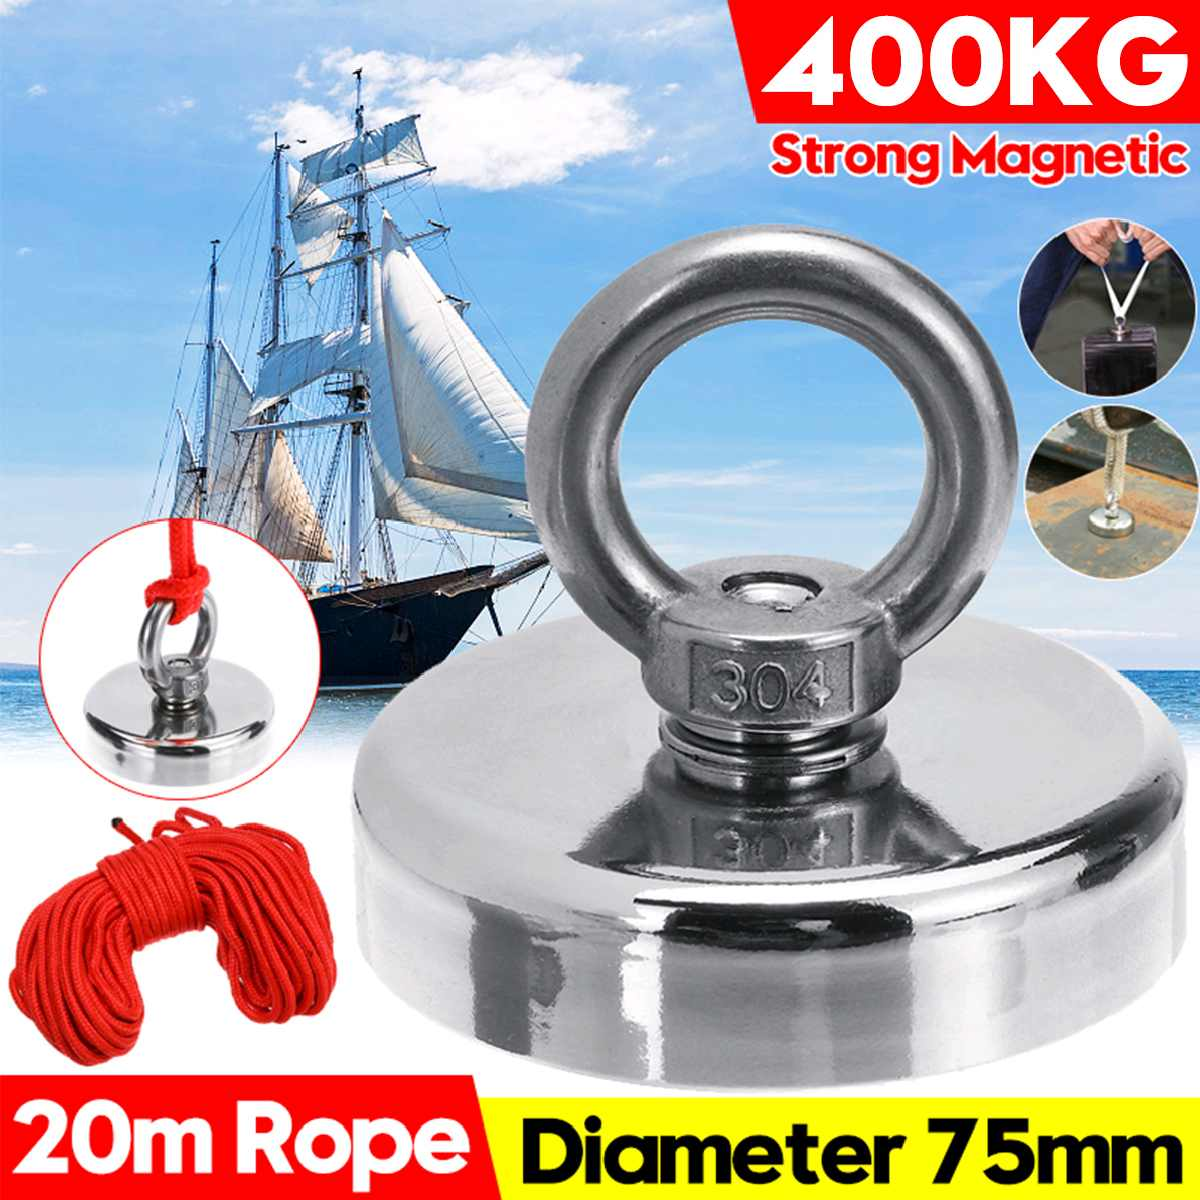 400KG Super Strong Magnet Pot Fishing Magnets Salvage Fishing Hook Magnets Strongest Permanent Powerful Magnetic With 20M Rope